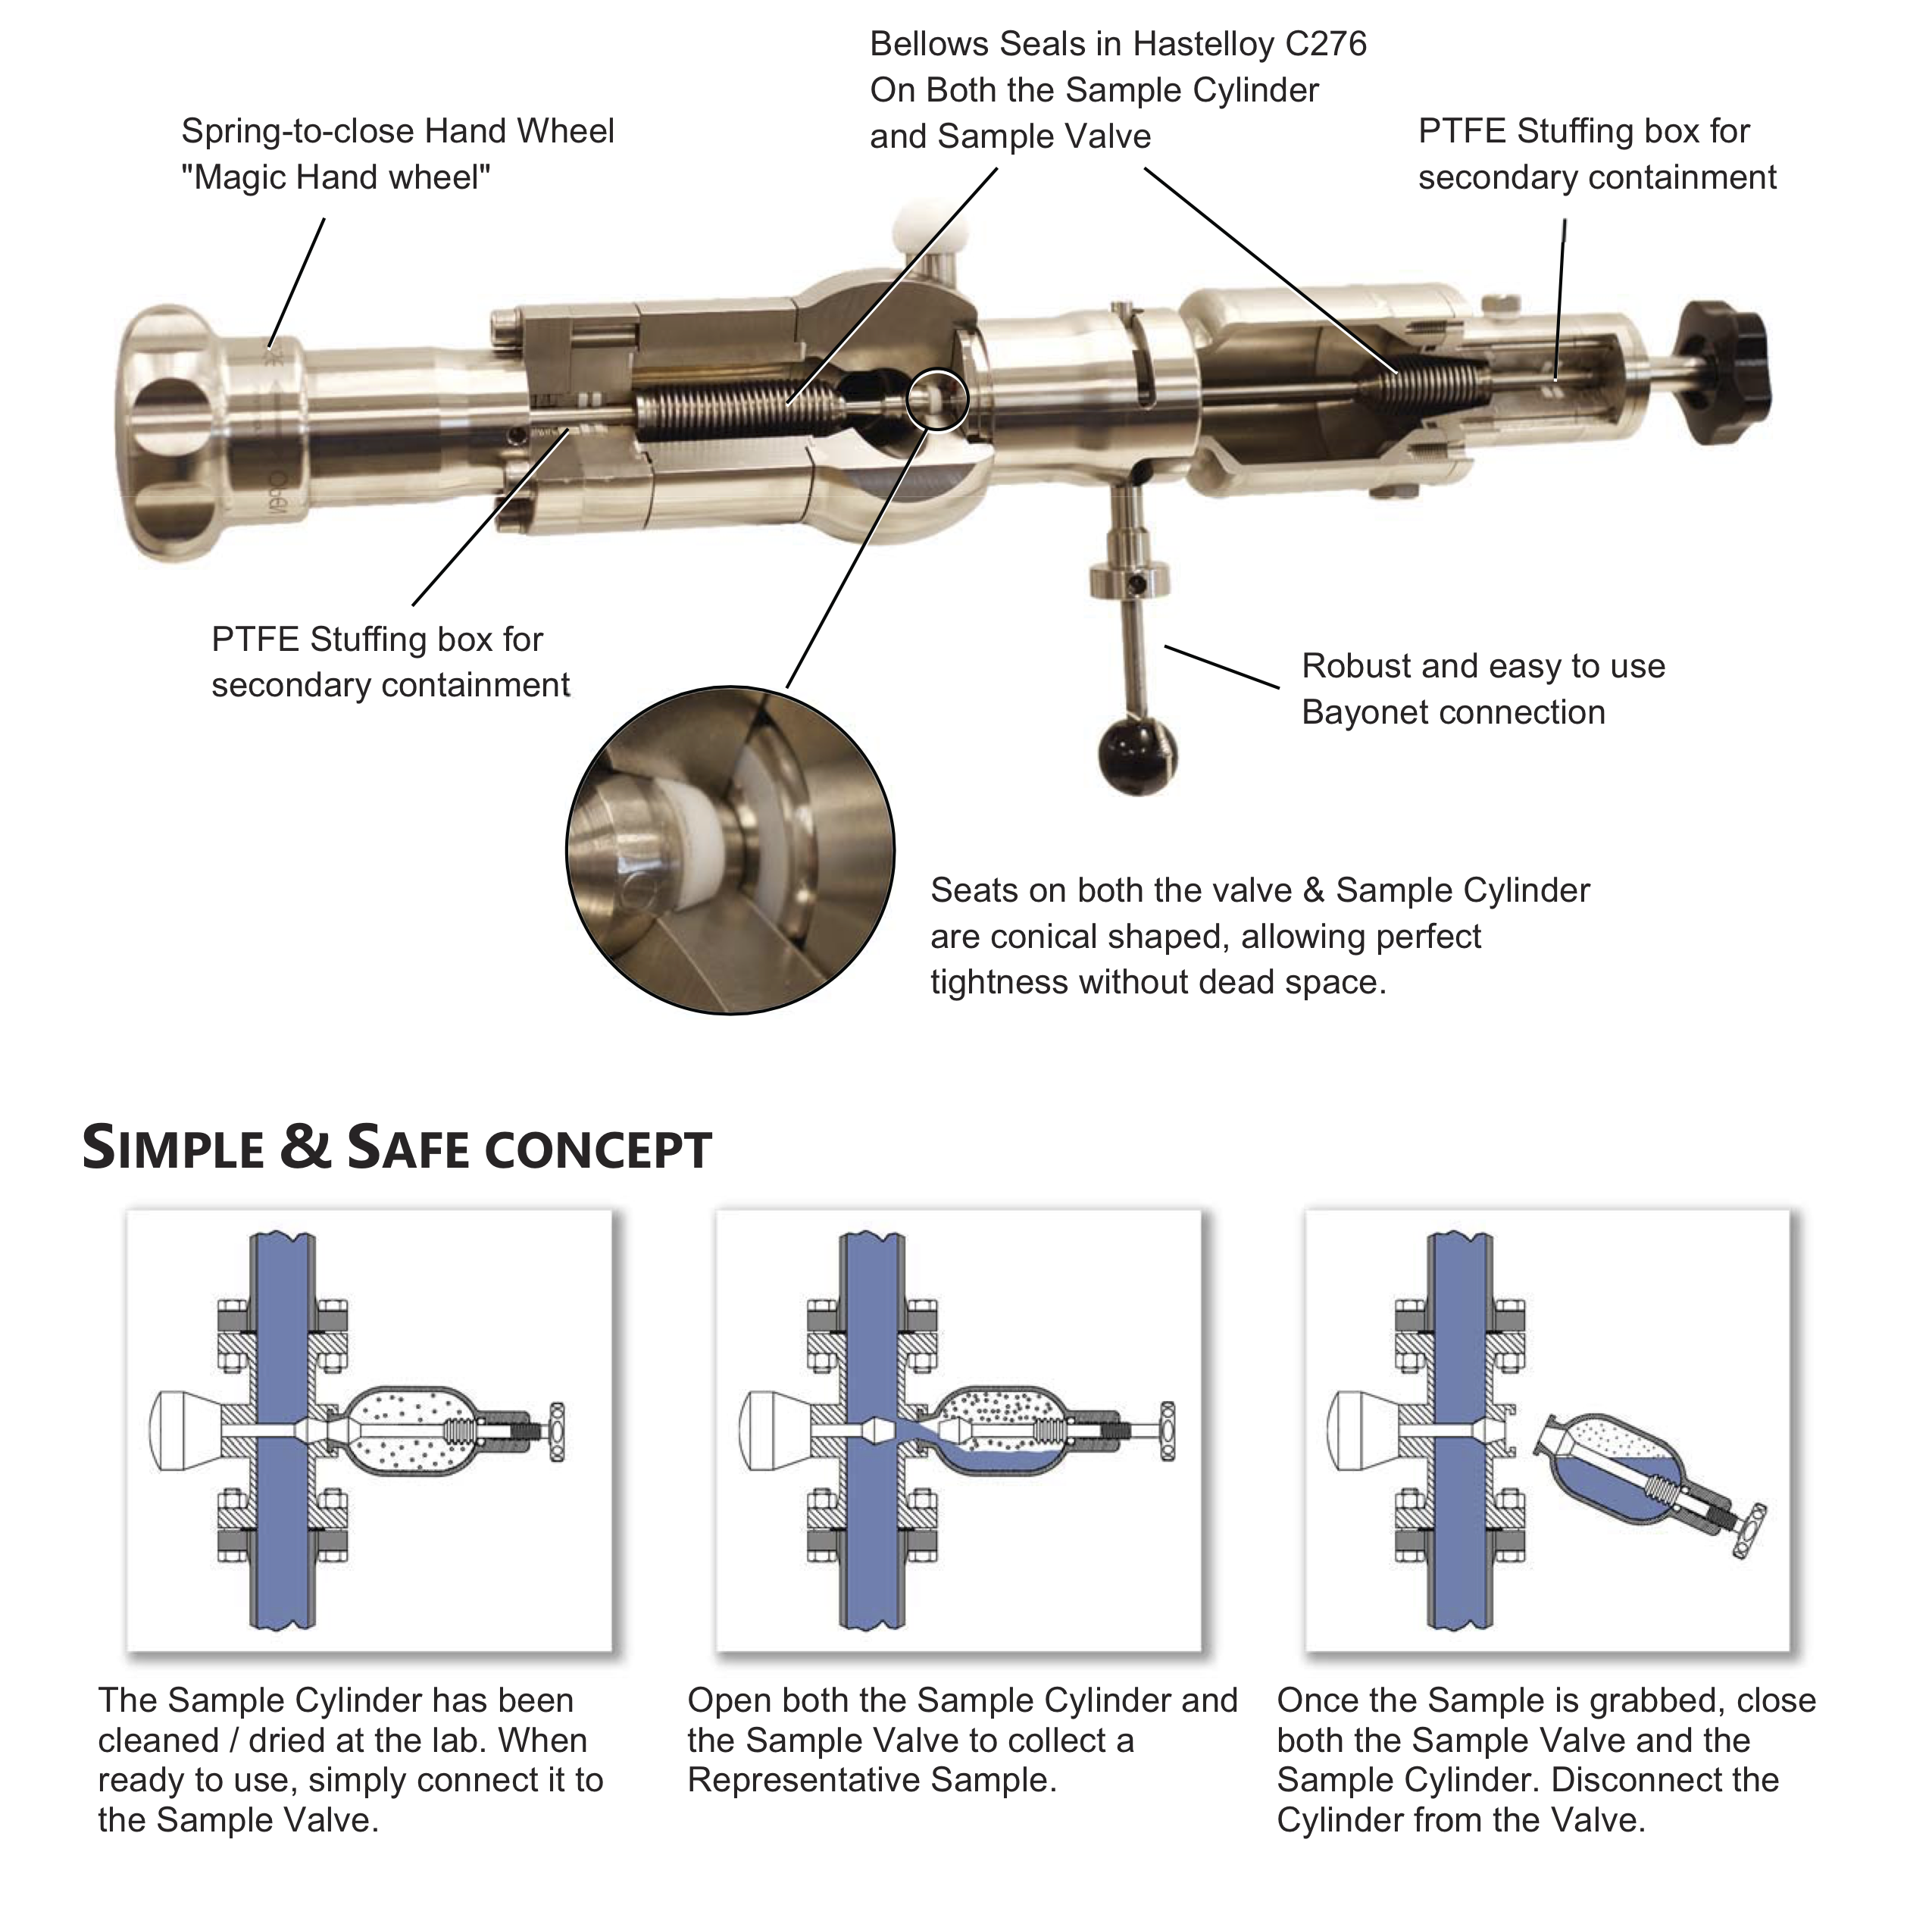 Cutaway view of sample cylinder & valve